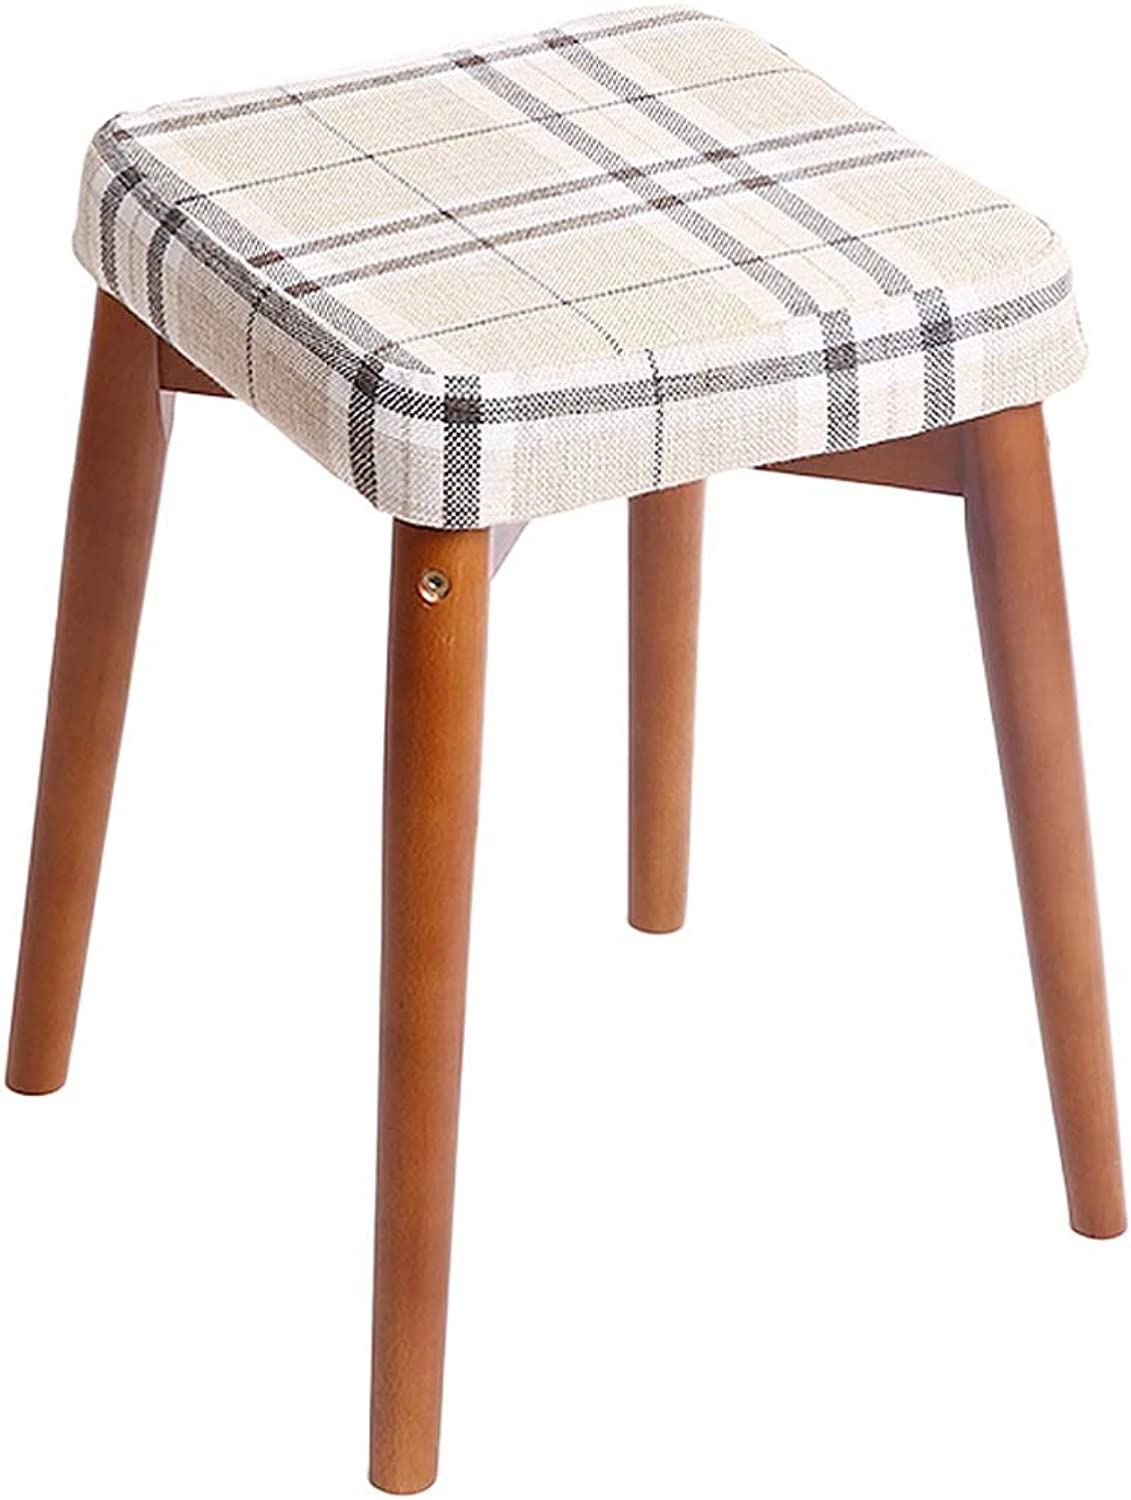 Stool Change shoes Stool Solid Wood Home Dining Table Stool Dressing Stool Creative Fashion Fabric Stool ZHAOSHUNLI (color   Walnut color, Size   Square Style)